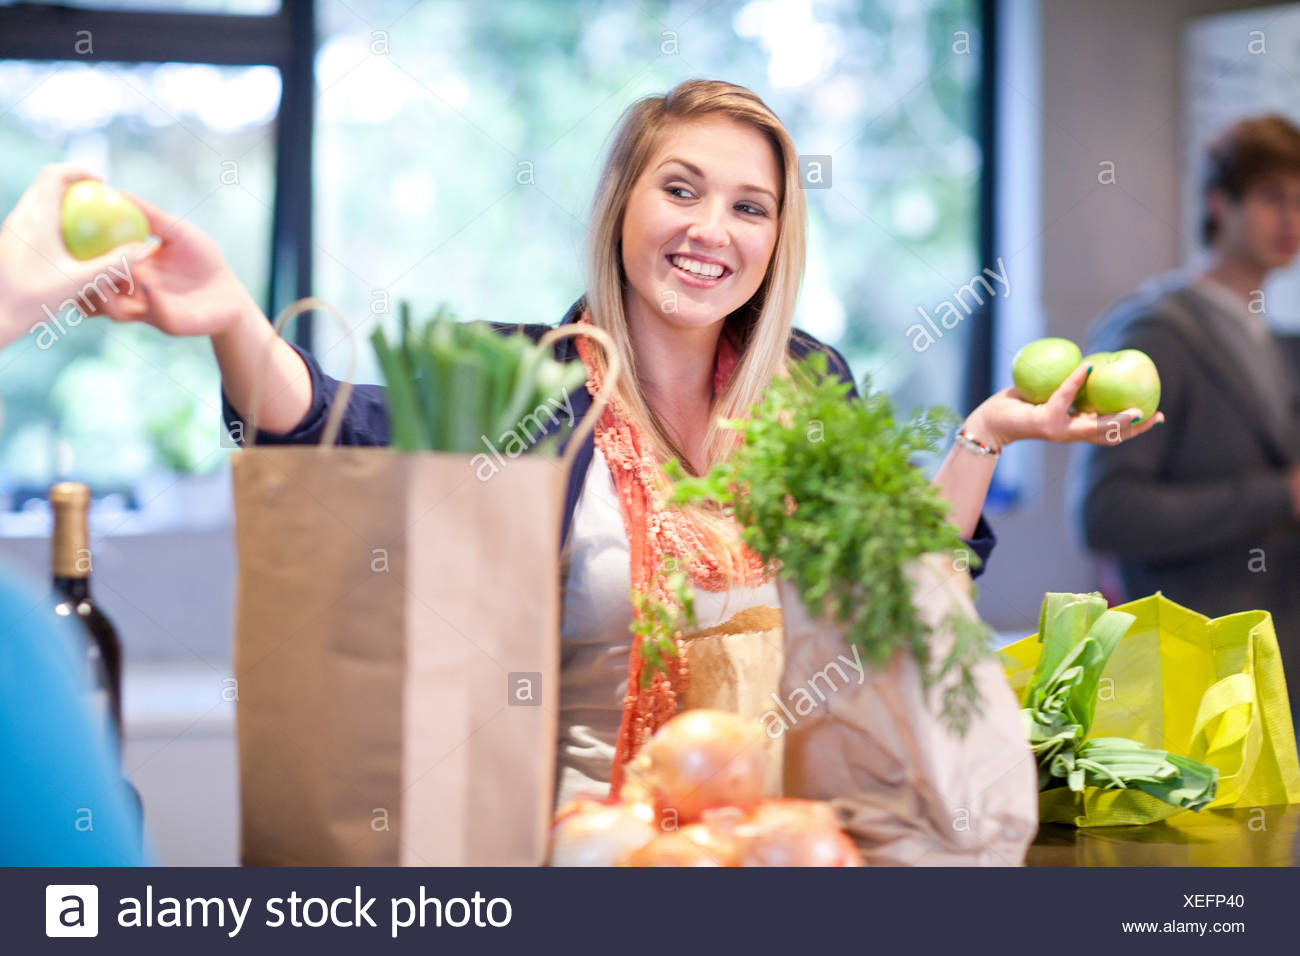 Young woman unpacking groceries - Stock Image